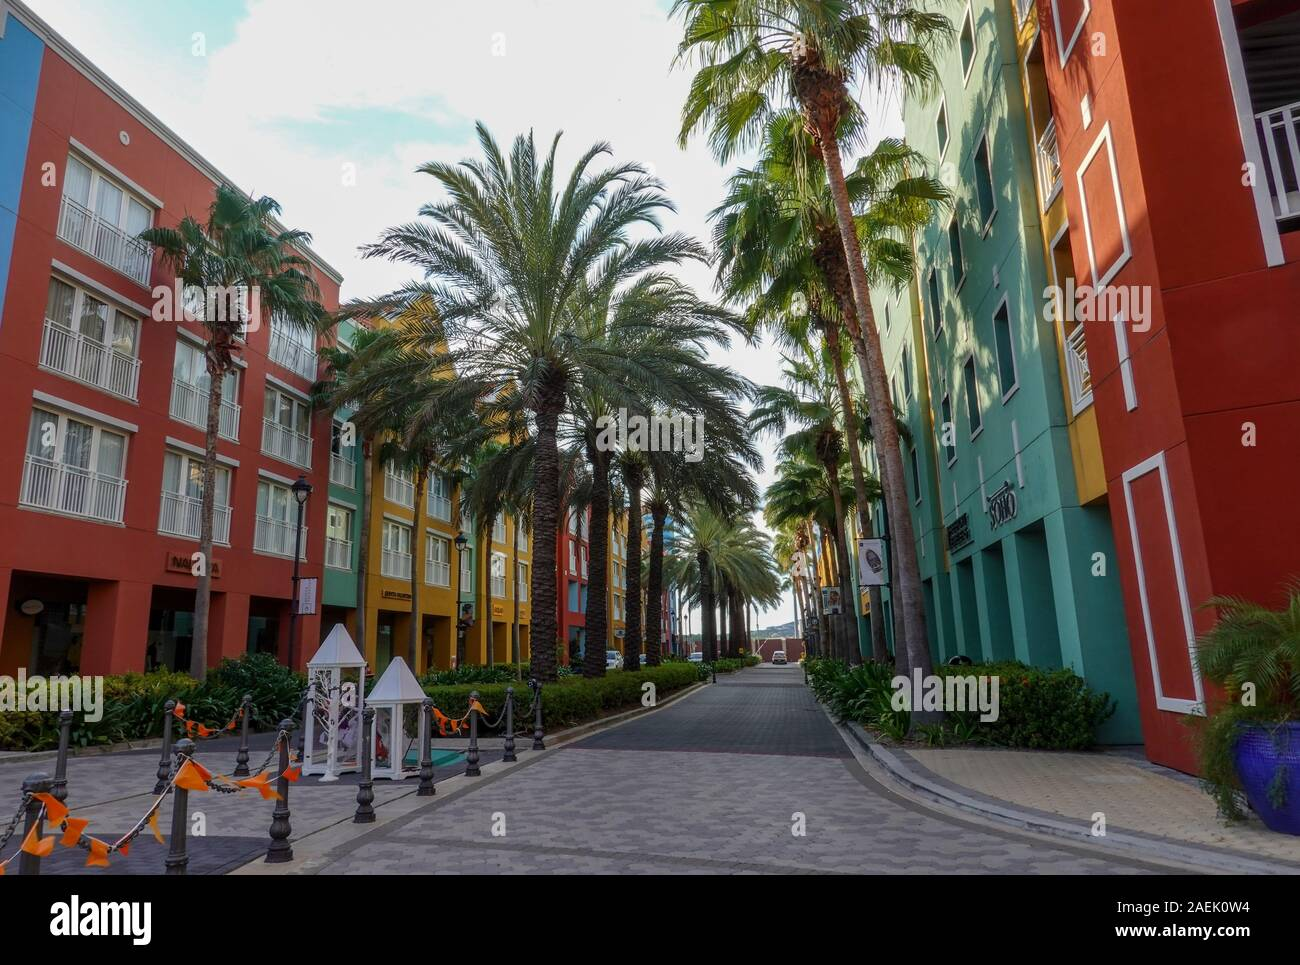 Curacao-11/3/19: The shopping district with its colonial architecture on Curacao island. Stock Photo